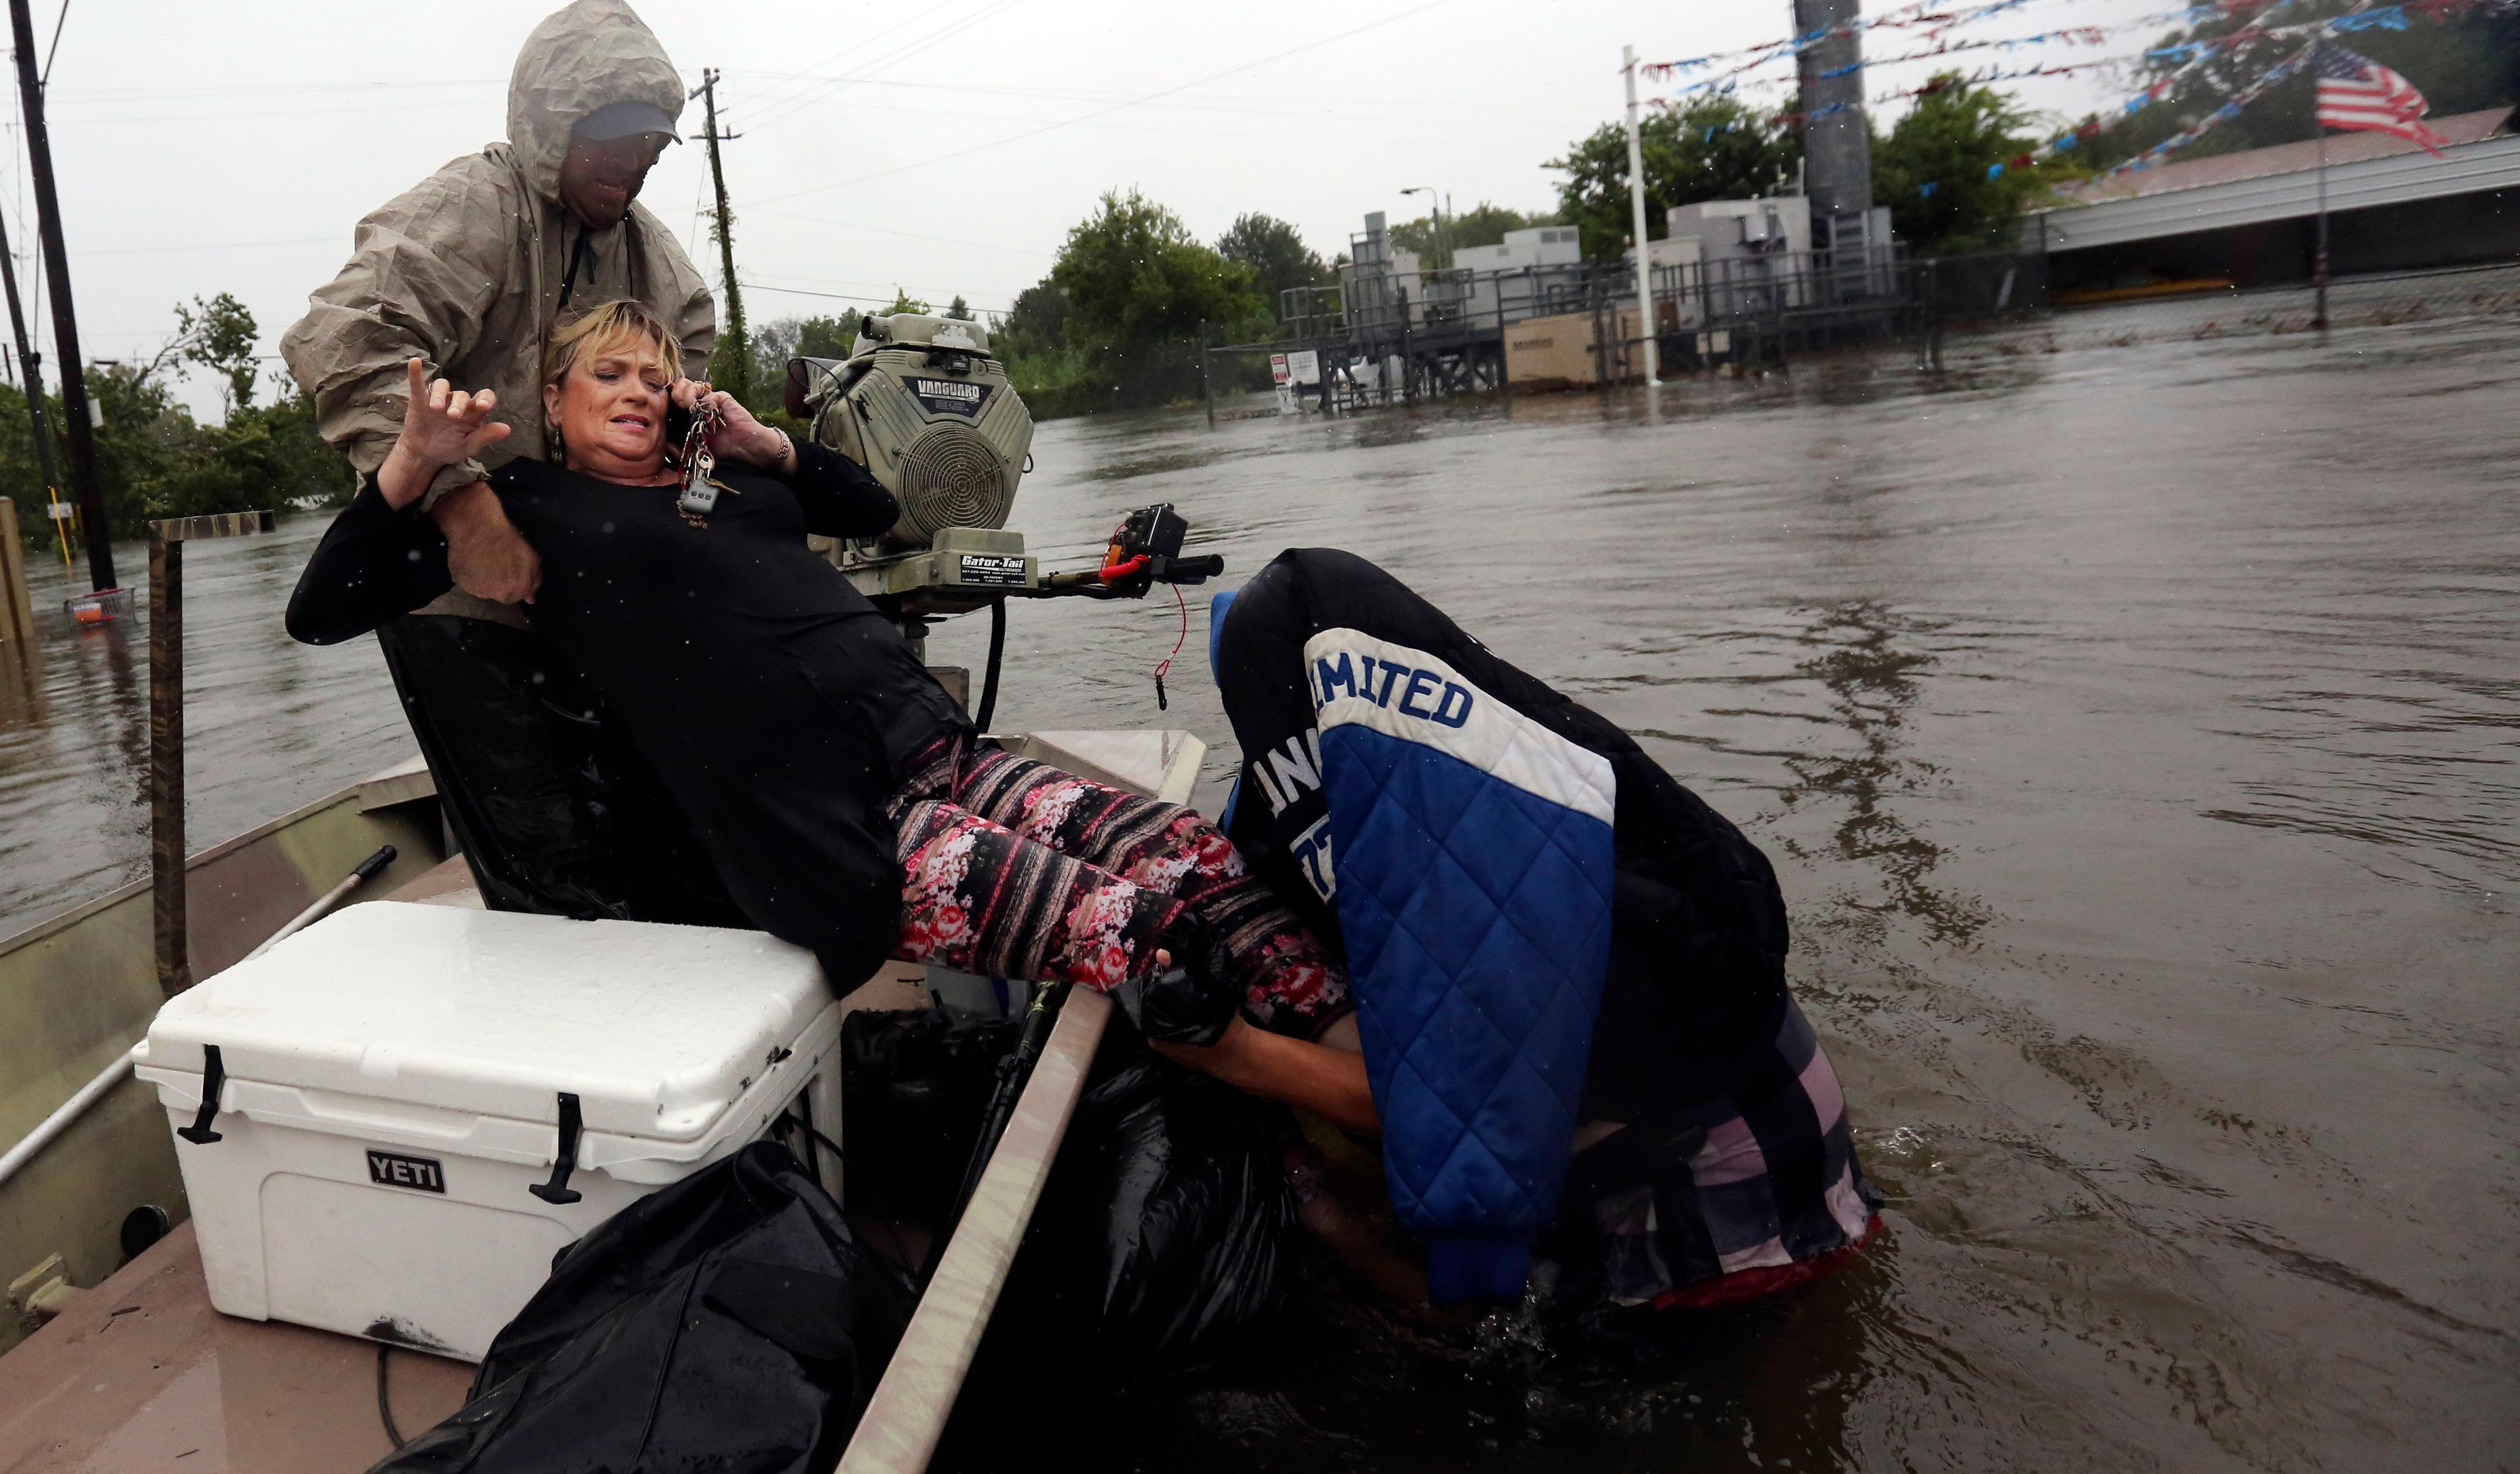 Rhonda Worthington is lifted into a boat while on her cellphone with a 911 dispatcher after her car became stuck in rising floodwaters from Tropical Storm Harvey in Houston, Texas, Monday, Aug. 28, 2017. (AP Photo/LM Otero)